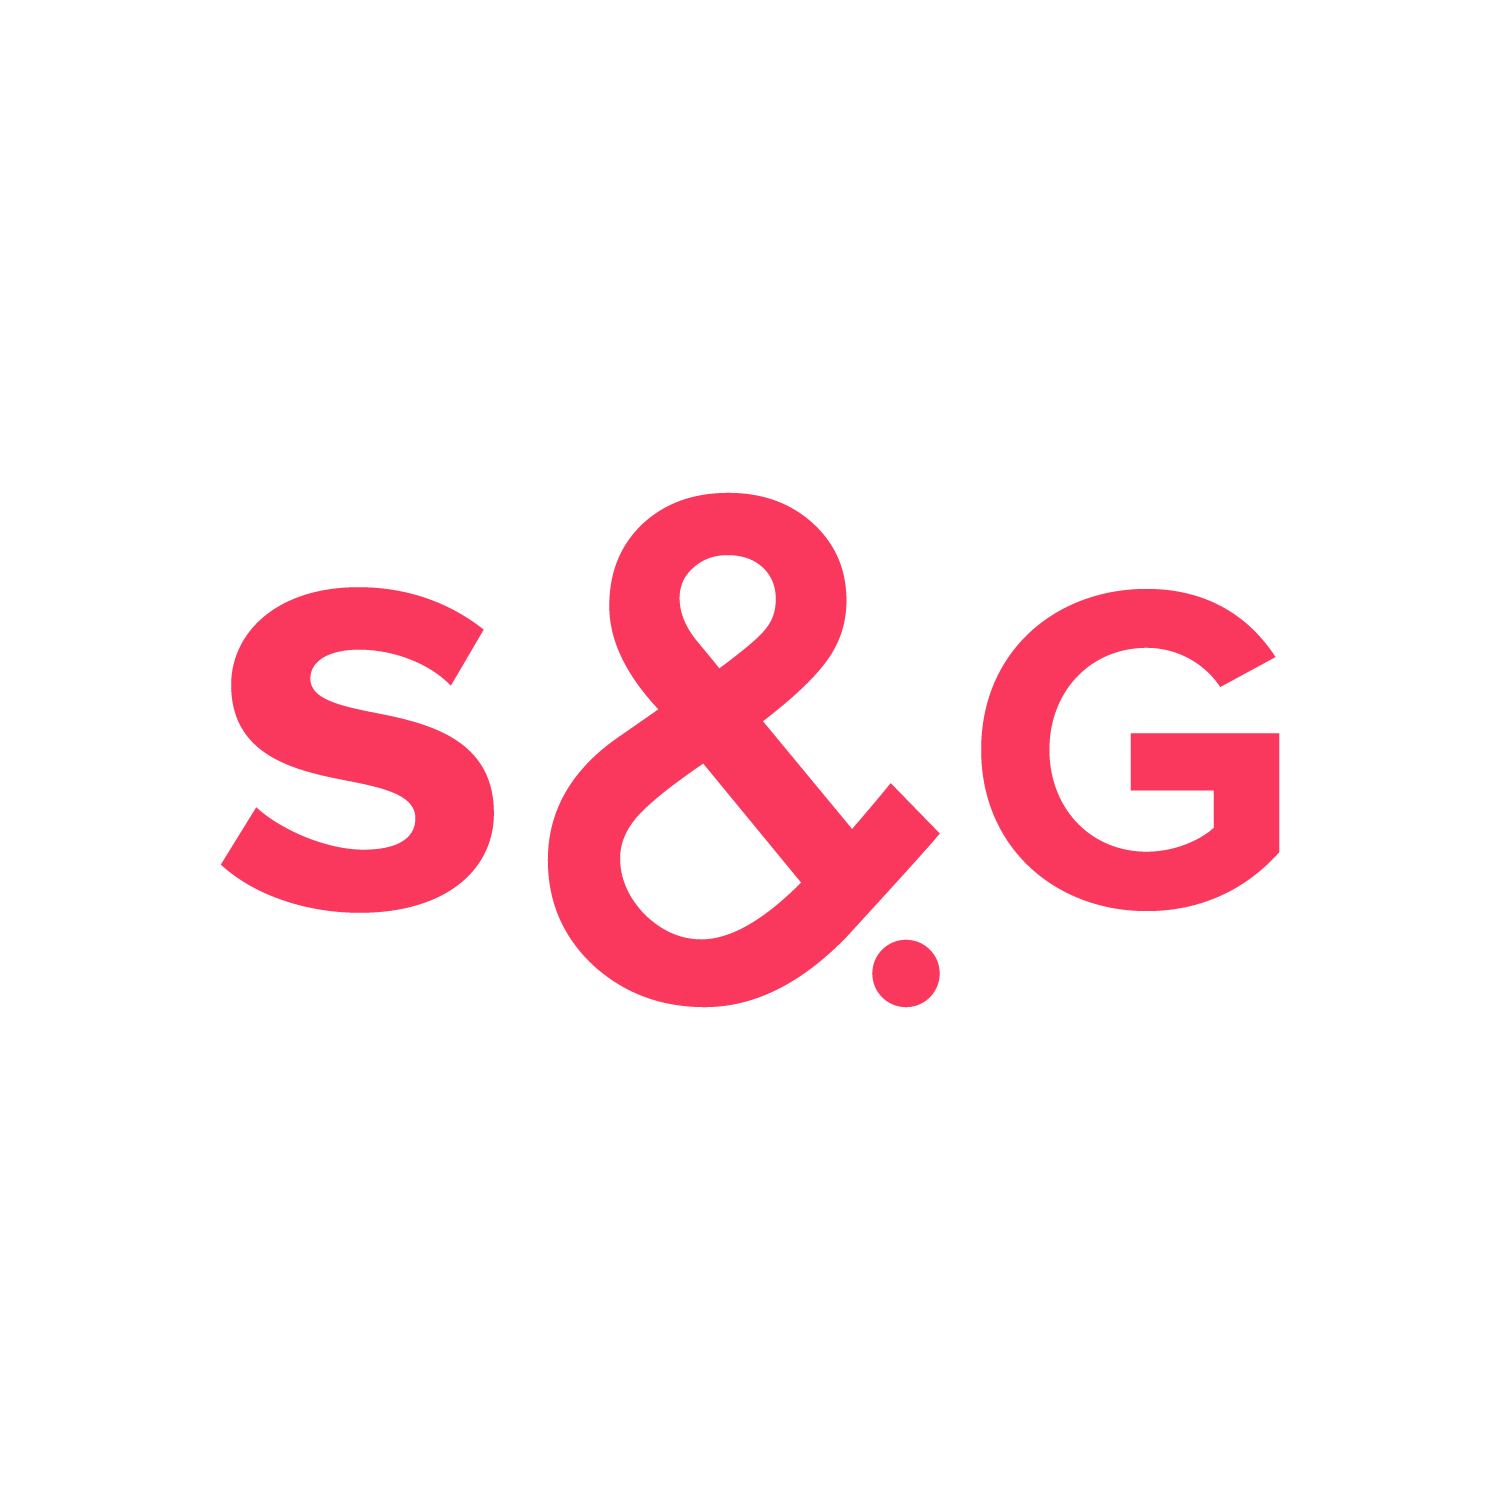 S&G Content Marketing